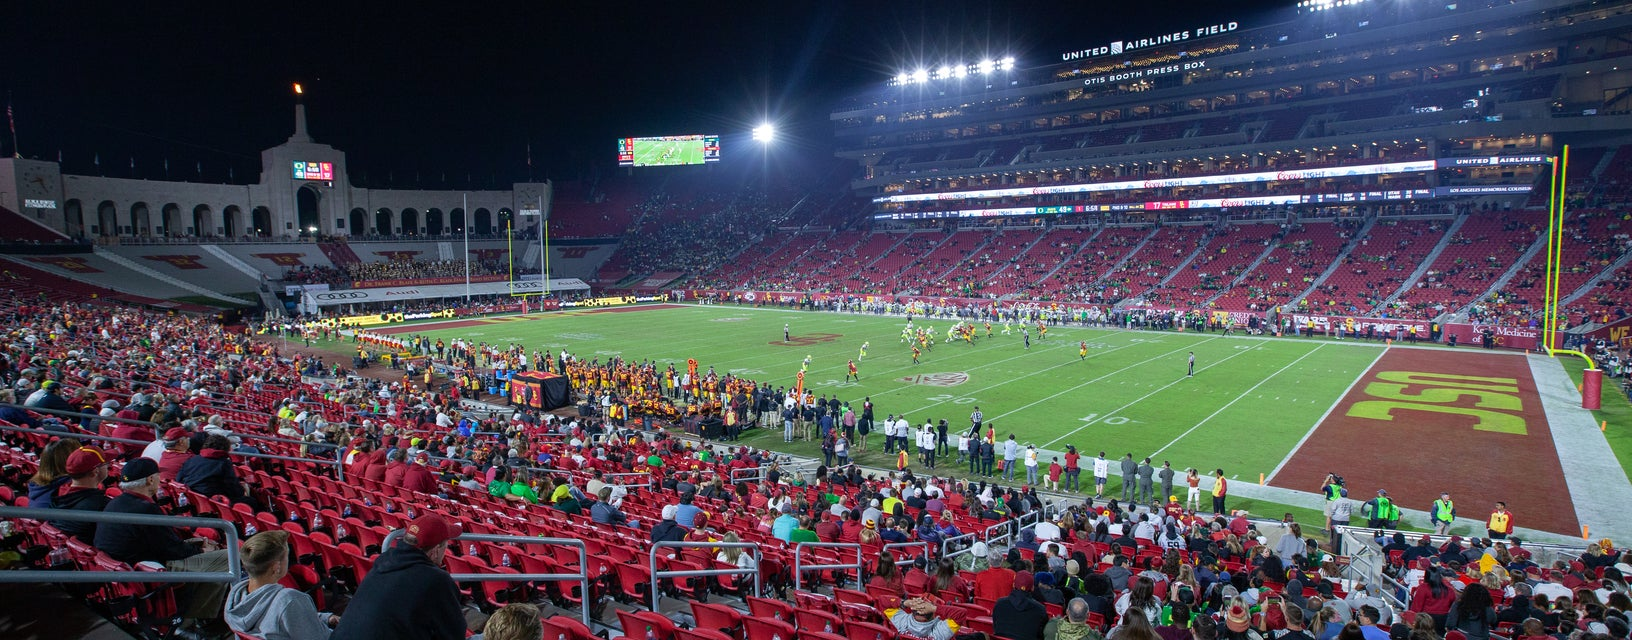 Seat view from Lower